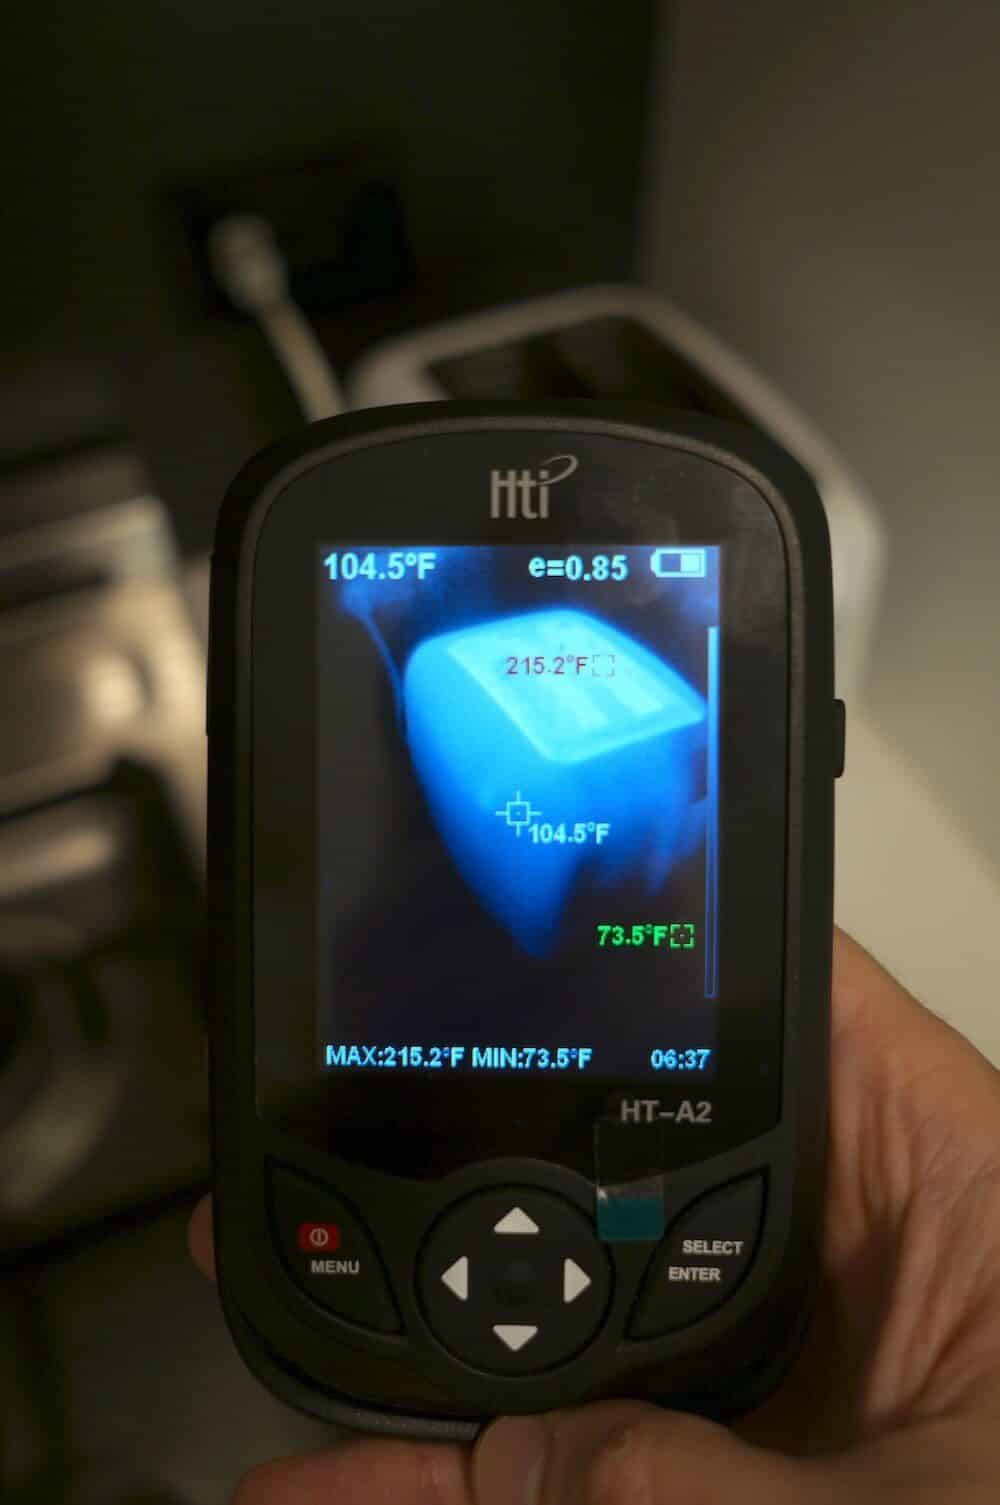 HTI HT-A2 thermal image quality